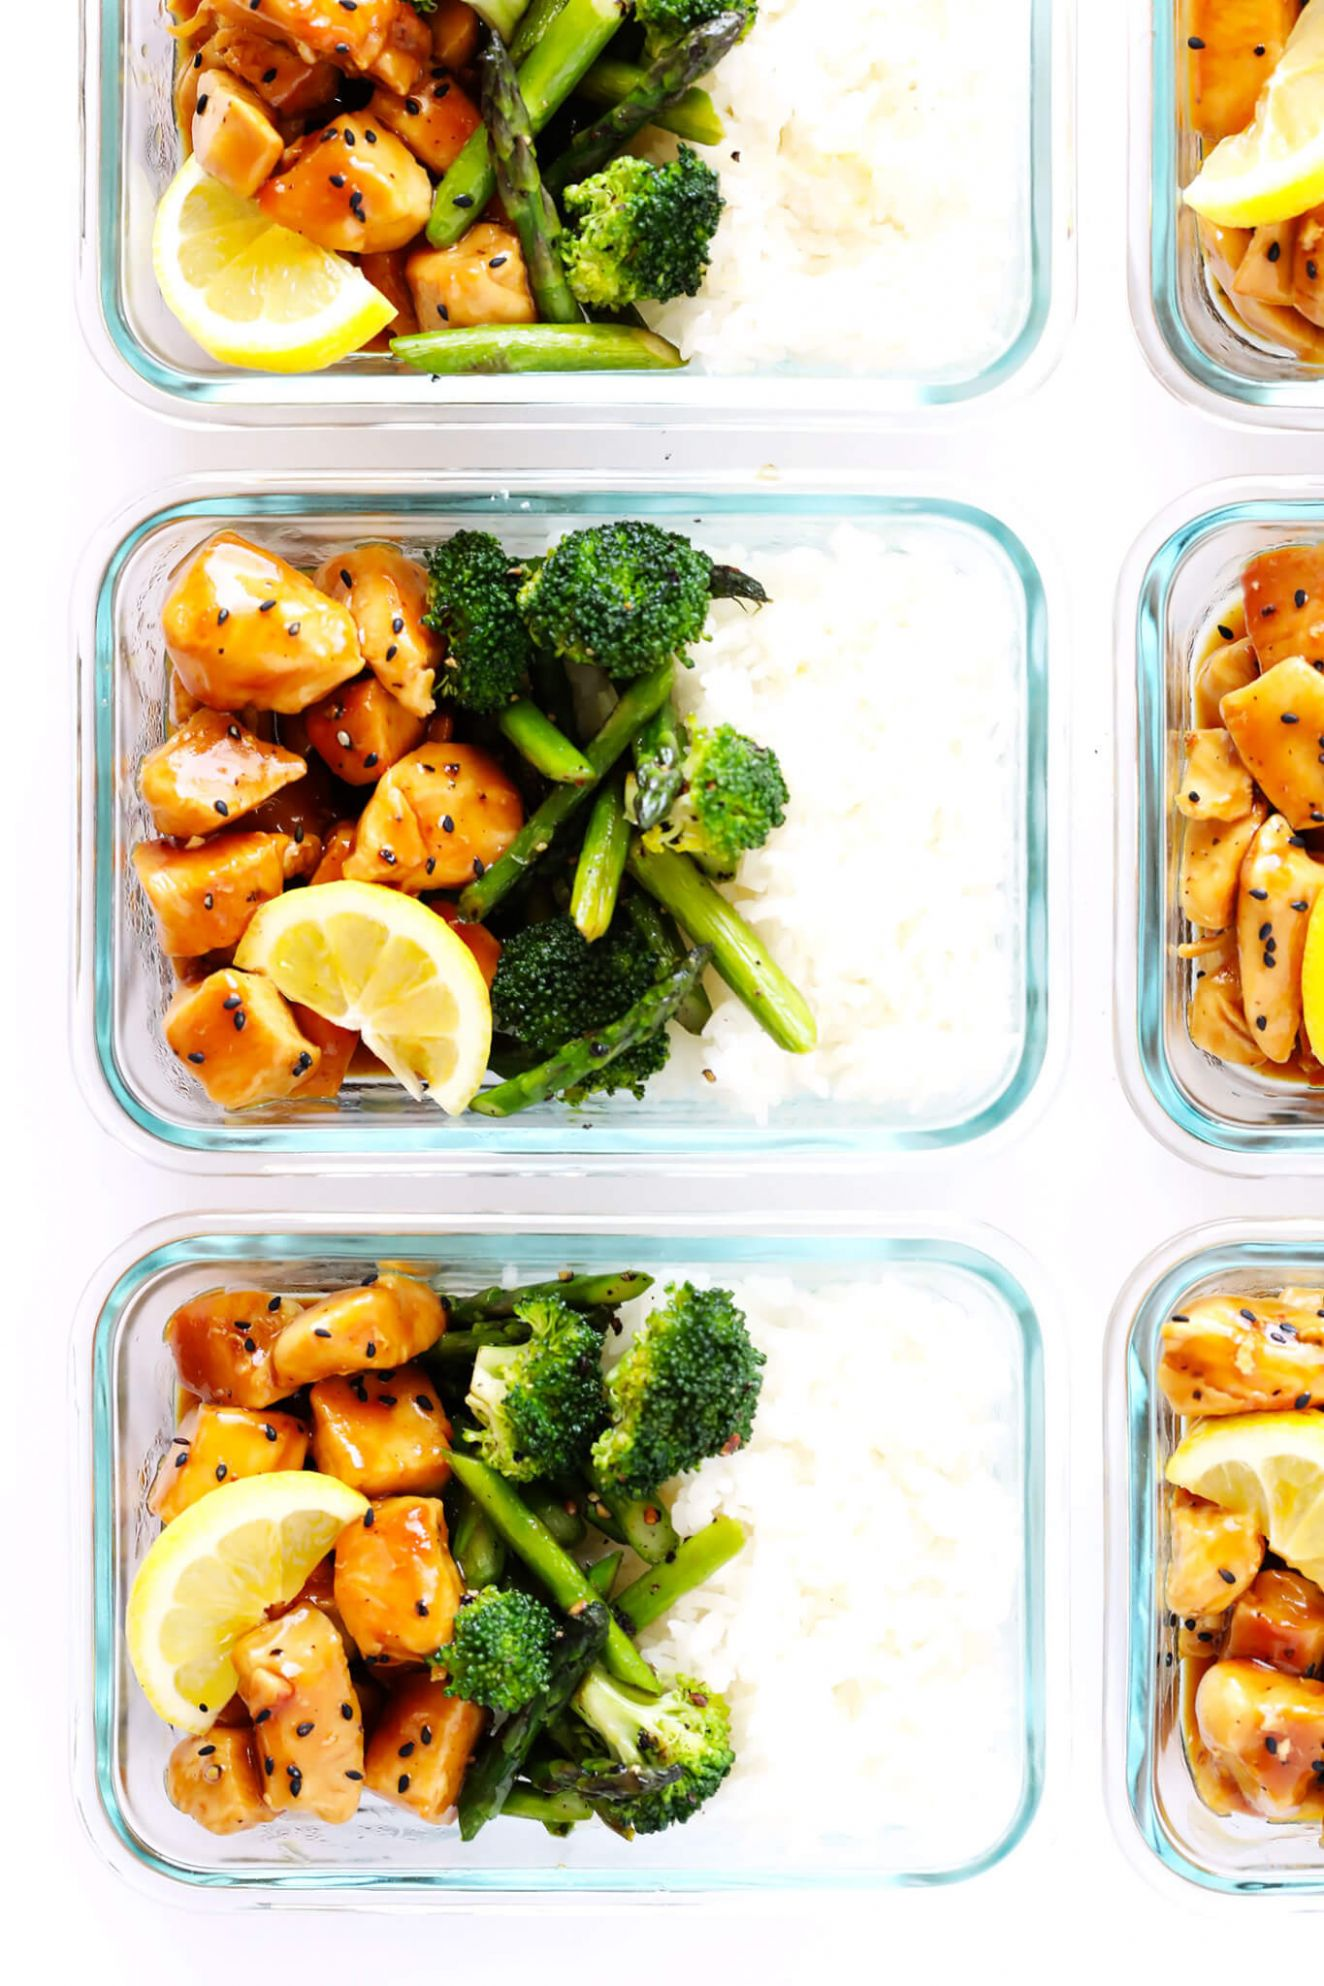 Honey Lemon Chicken Bowls (Meal Prep) - Dinner Recipes Meal Prep